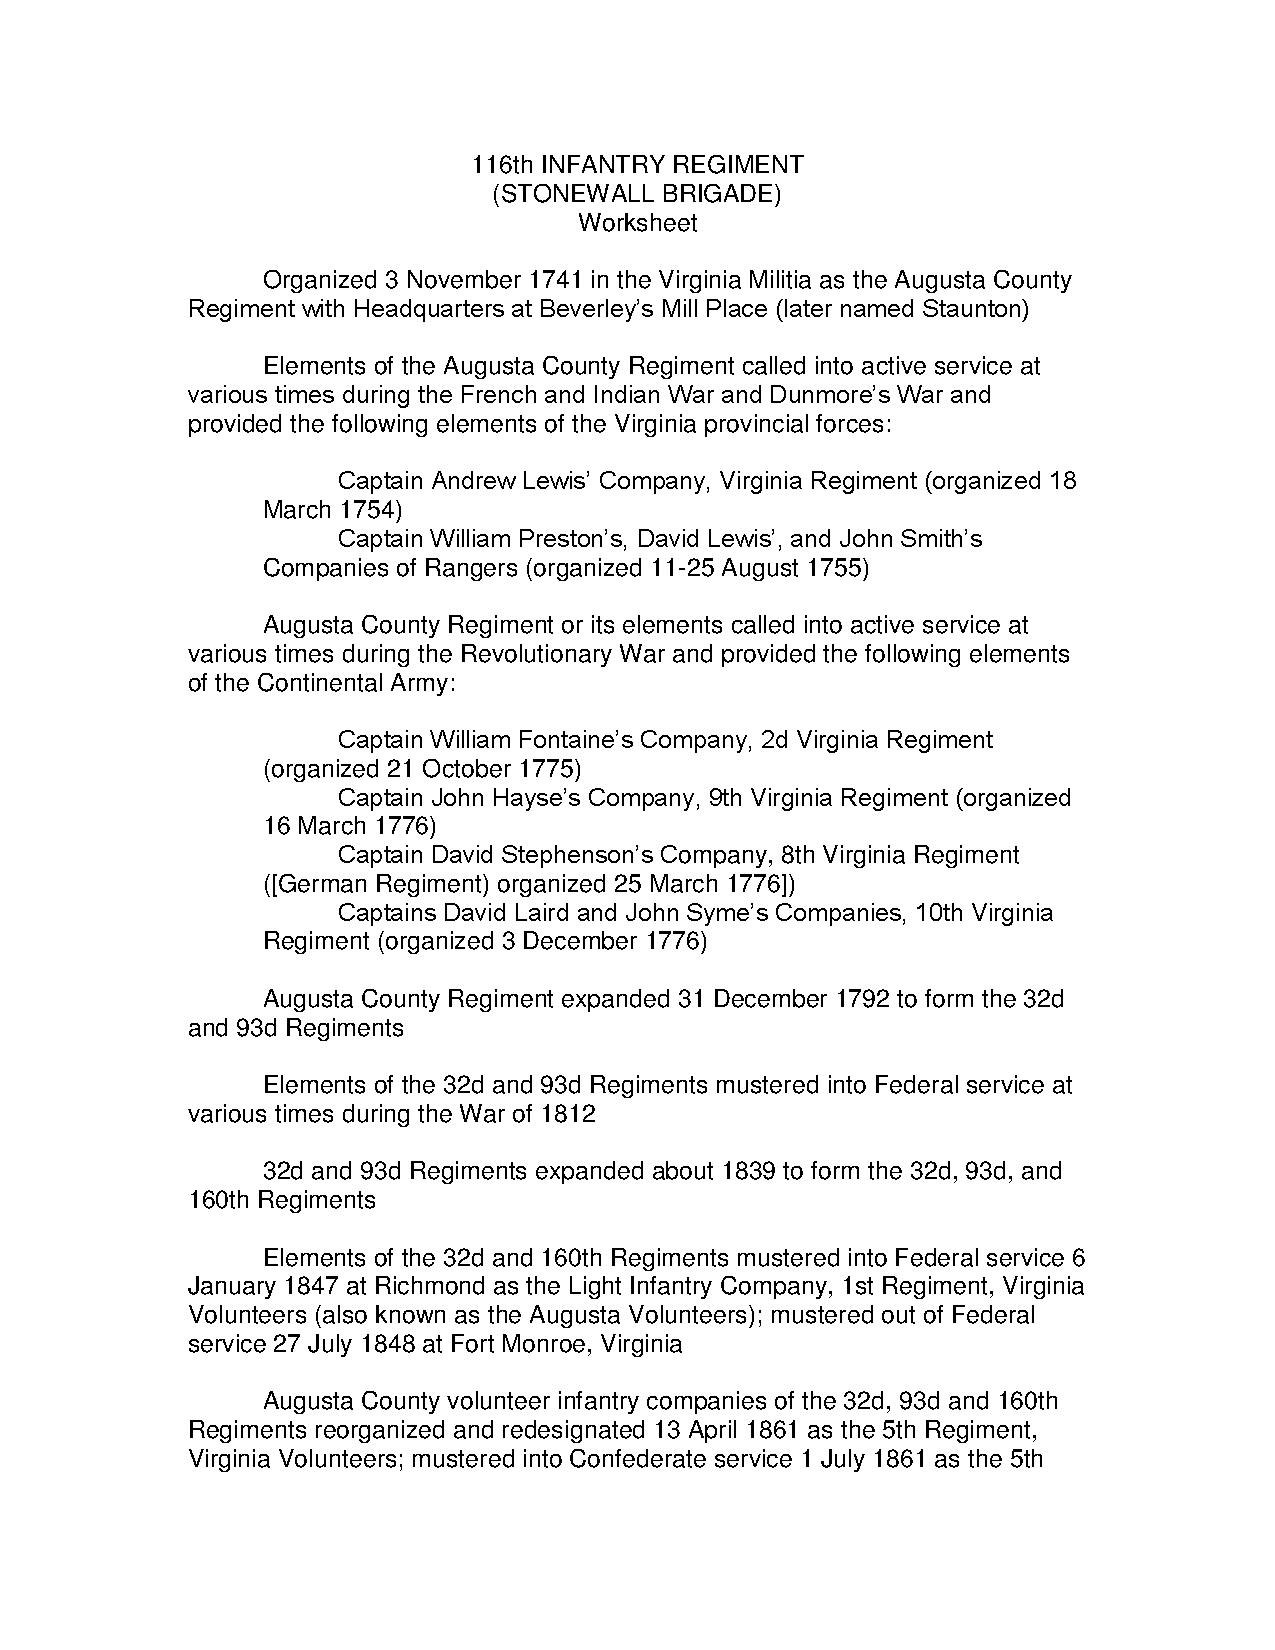 File 116th Infantry Regiment Lineage And Honors Cmh